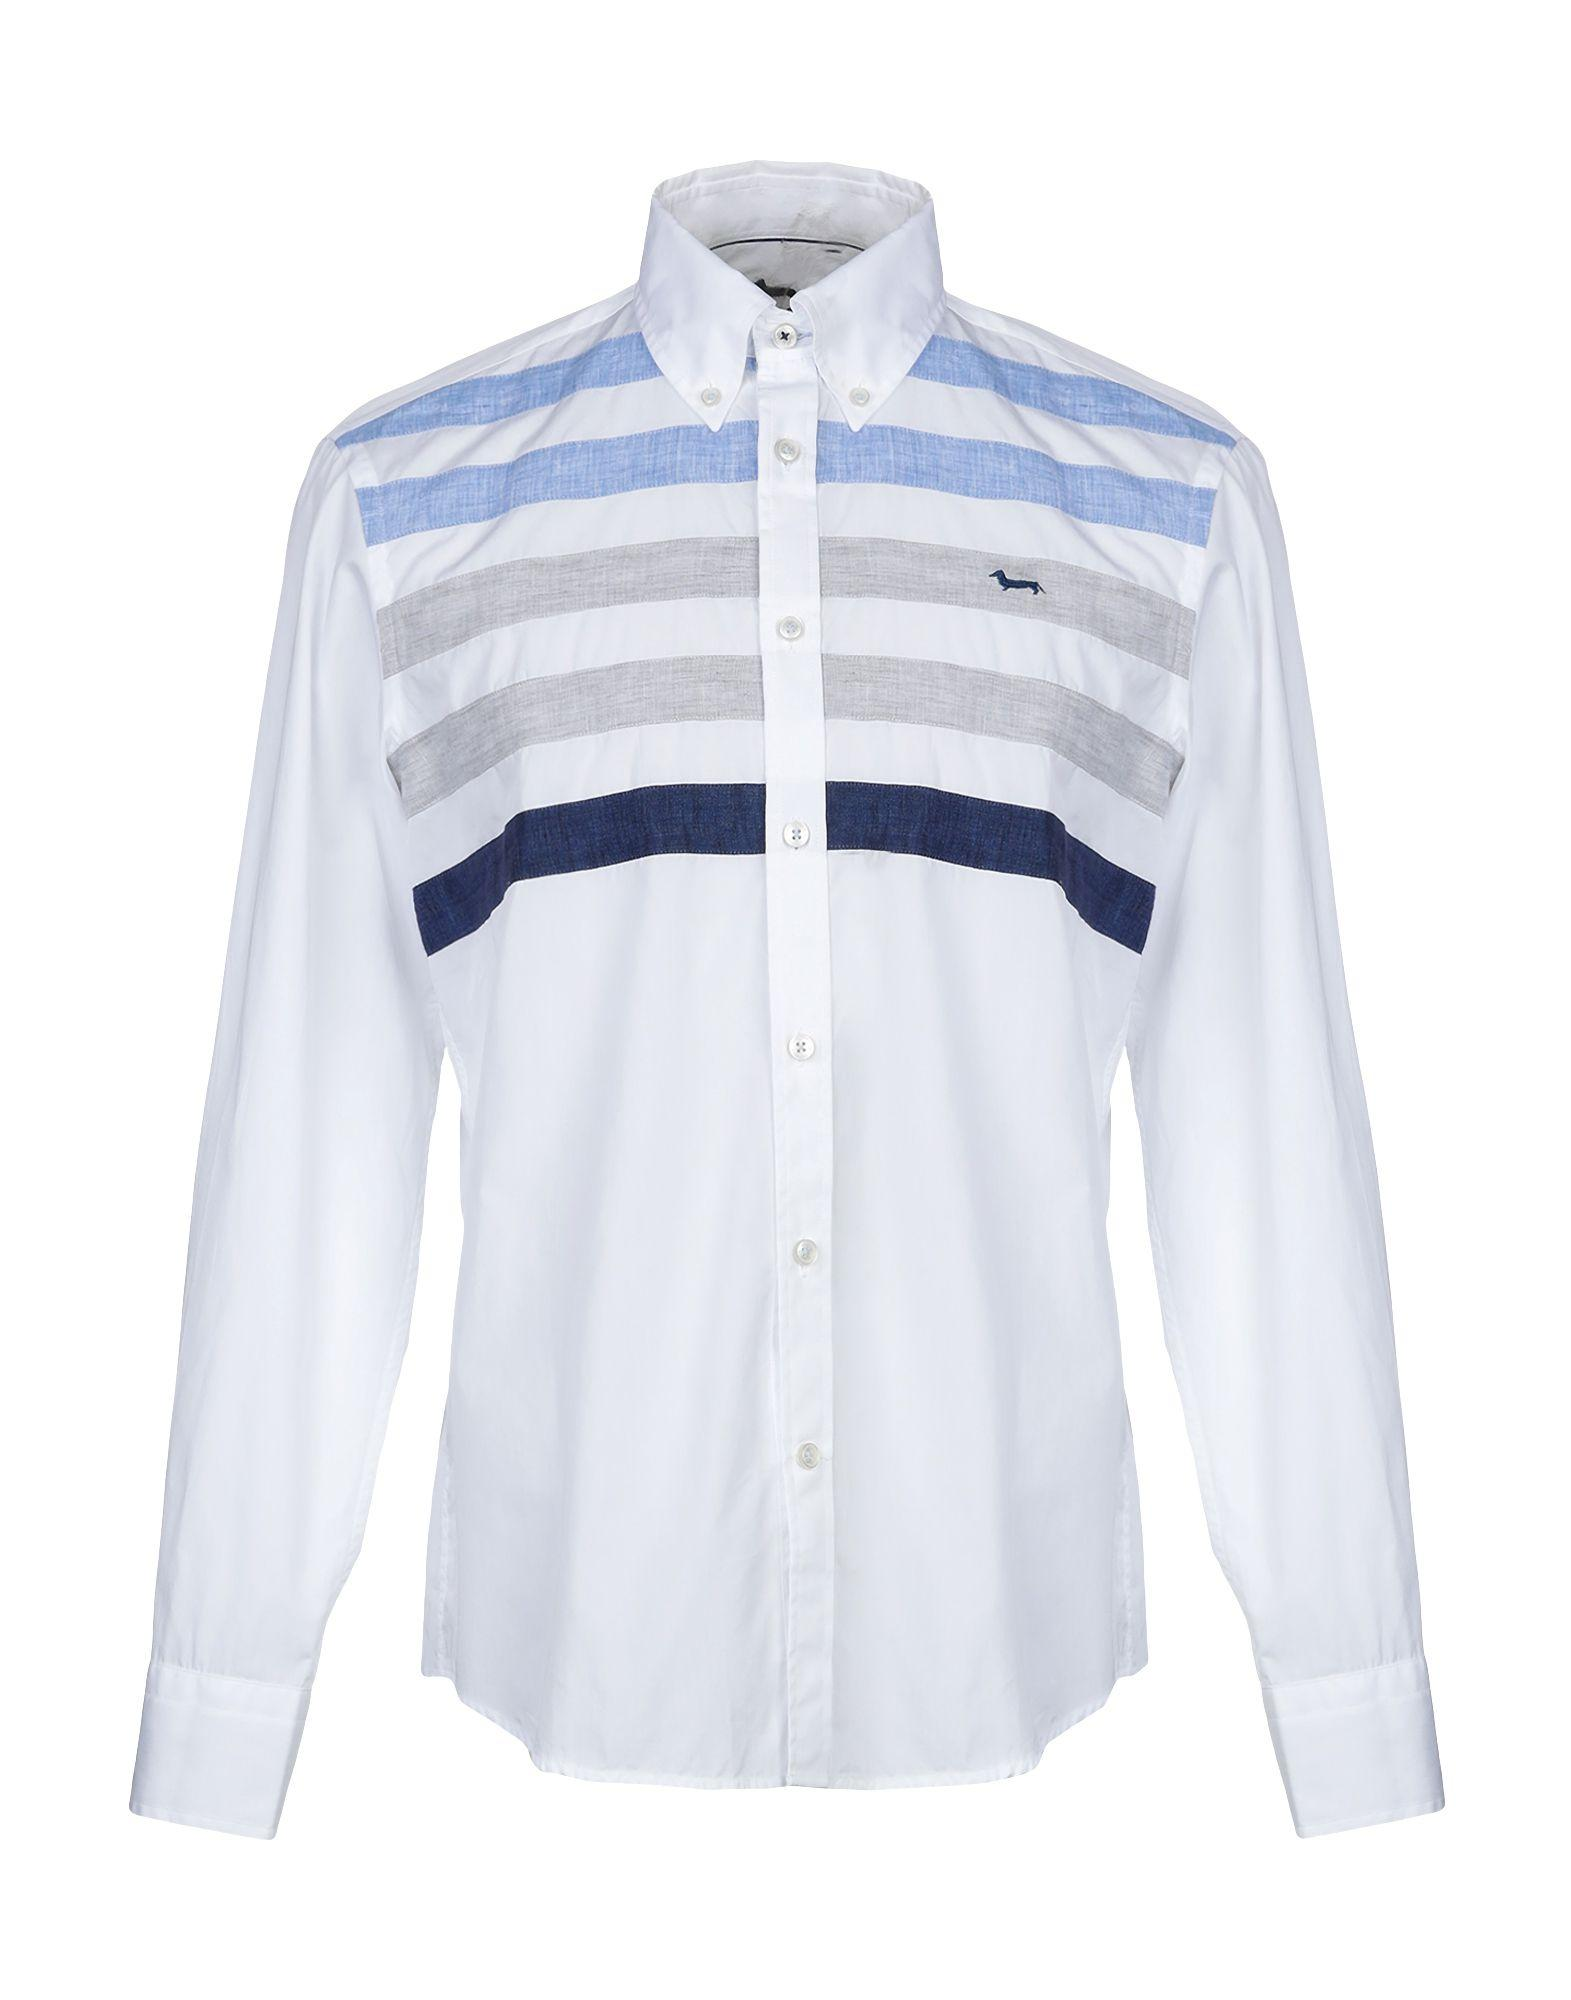 bb926a06a Harmont & Blaine Shirt in Blue for Men - Lyst